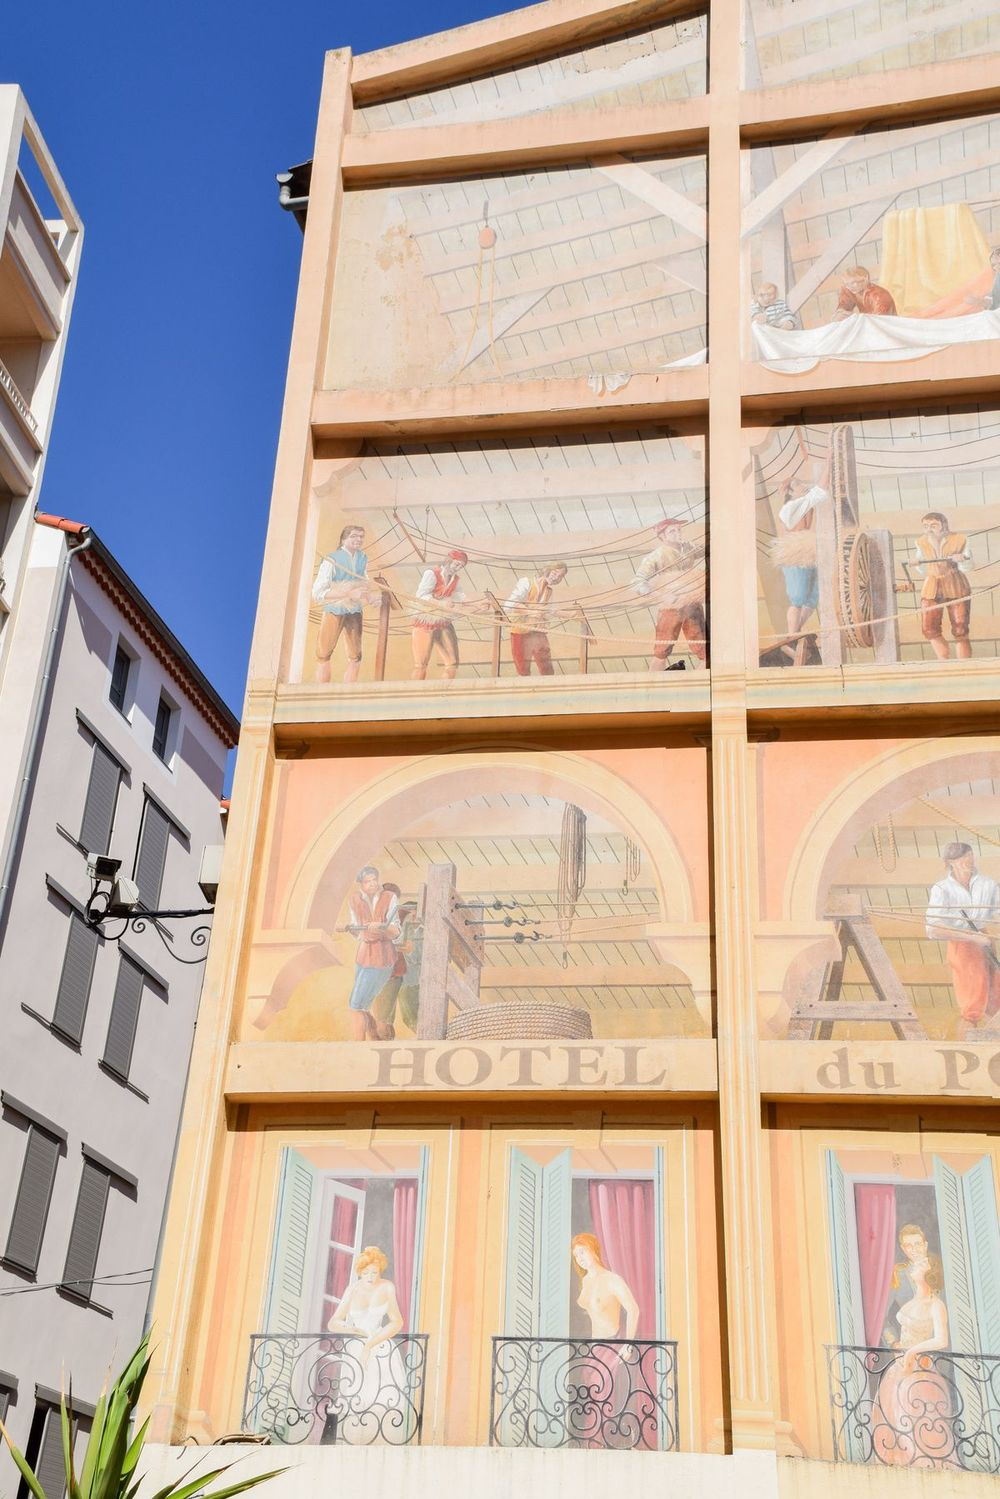 Trompe l'oeil Building in Old Town Toulon, France